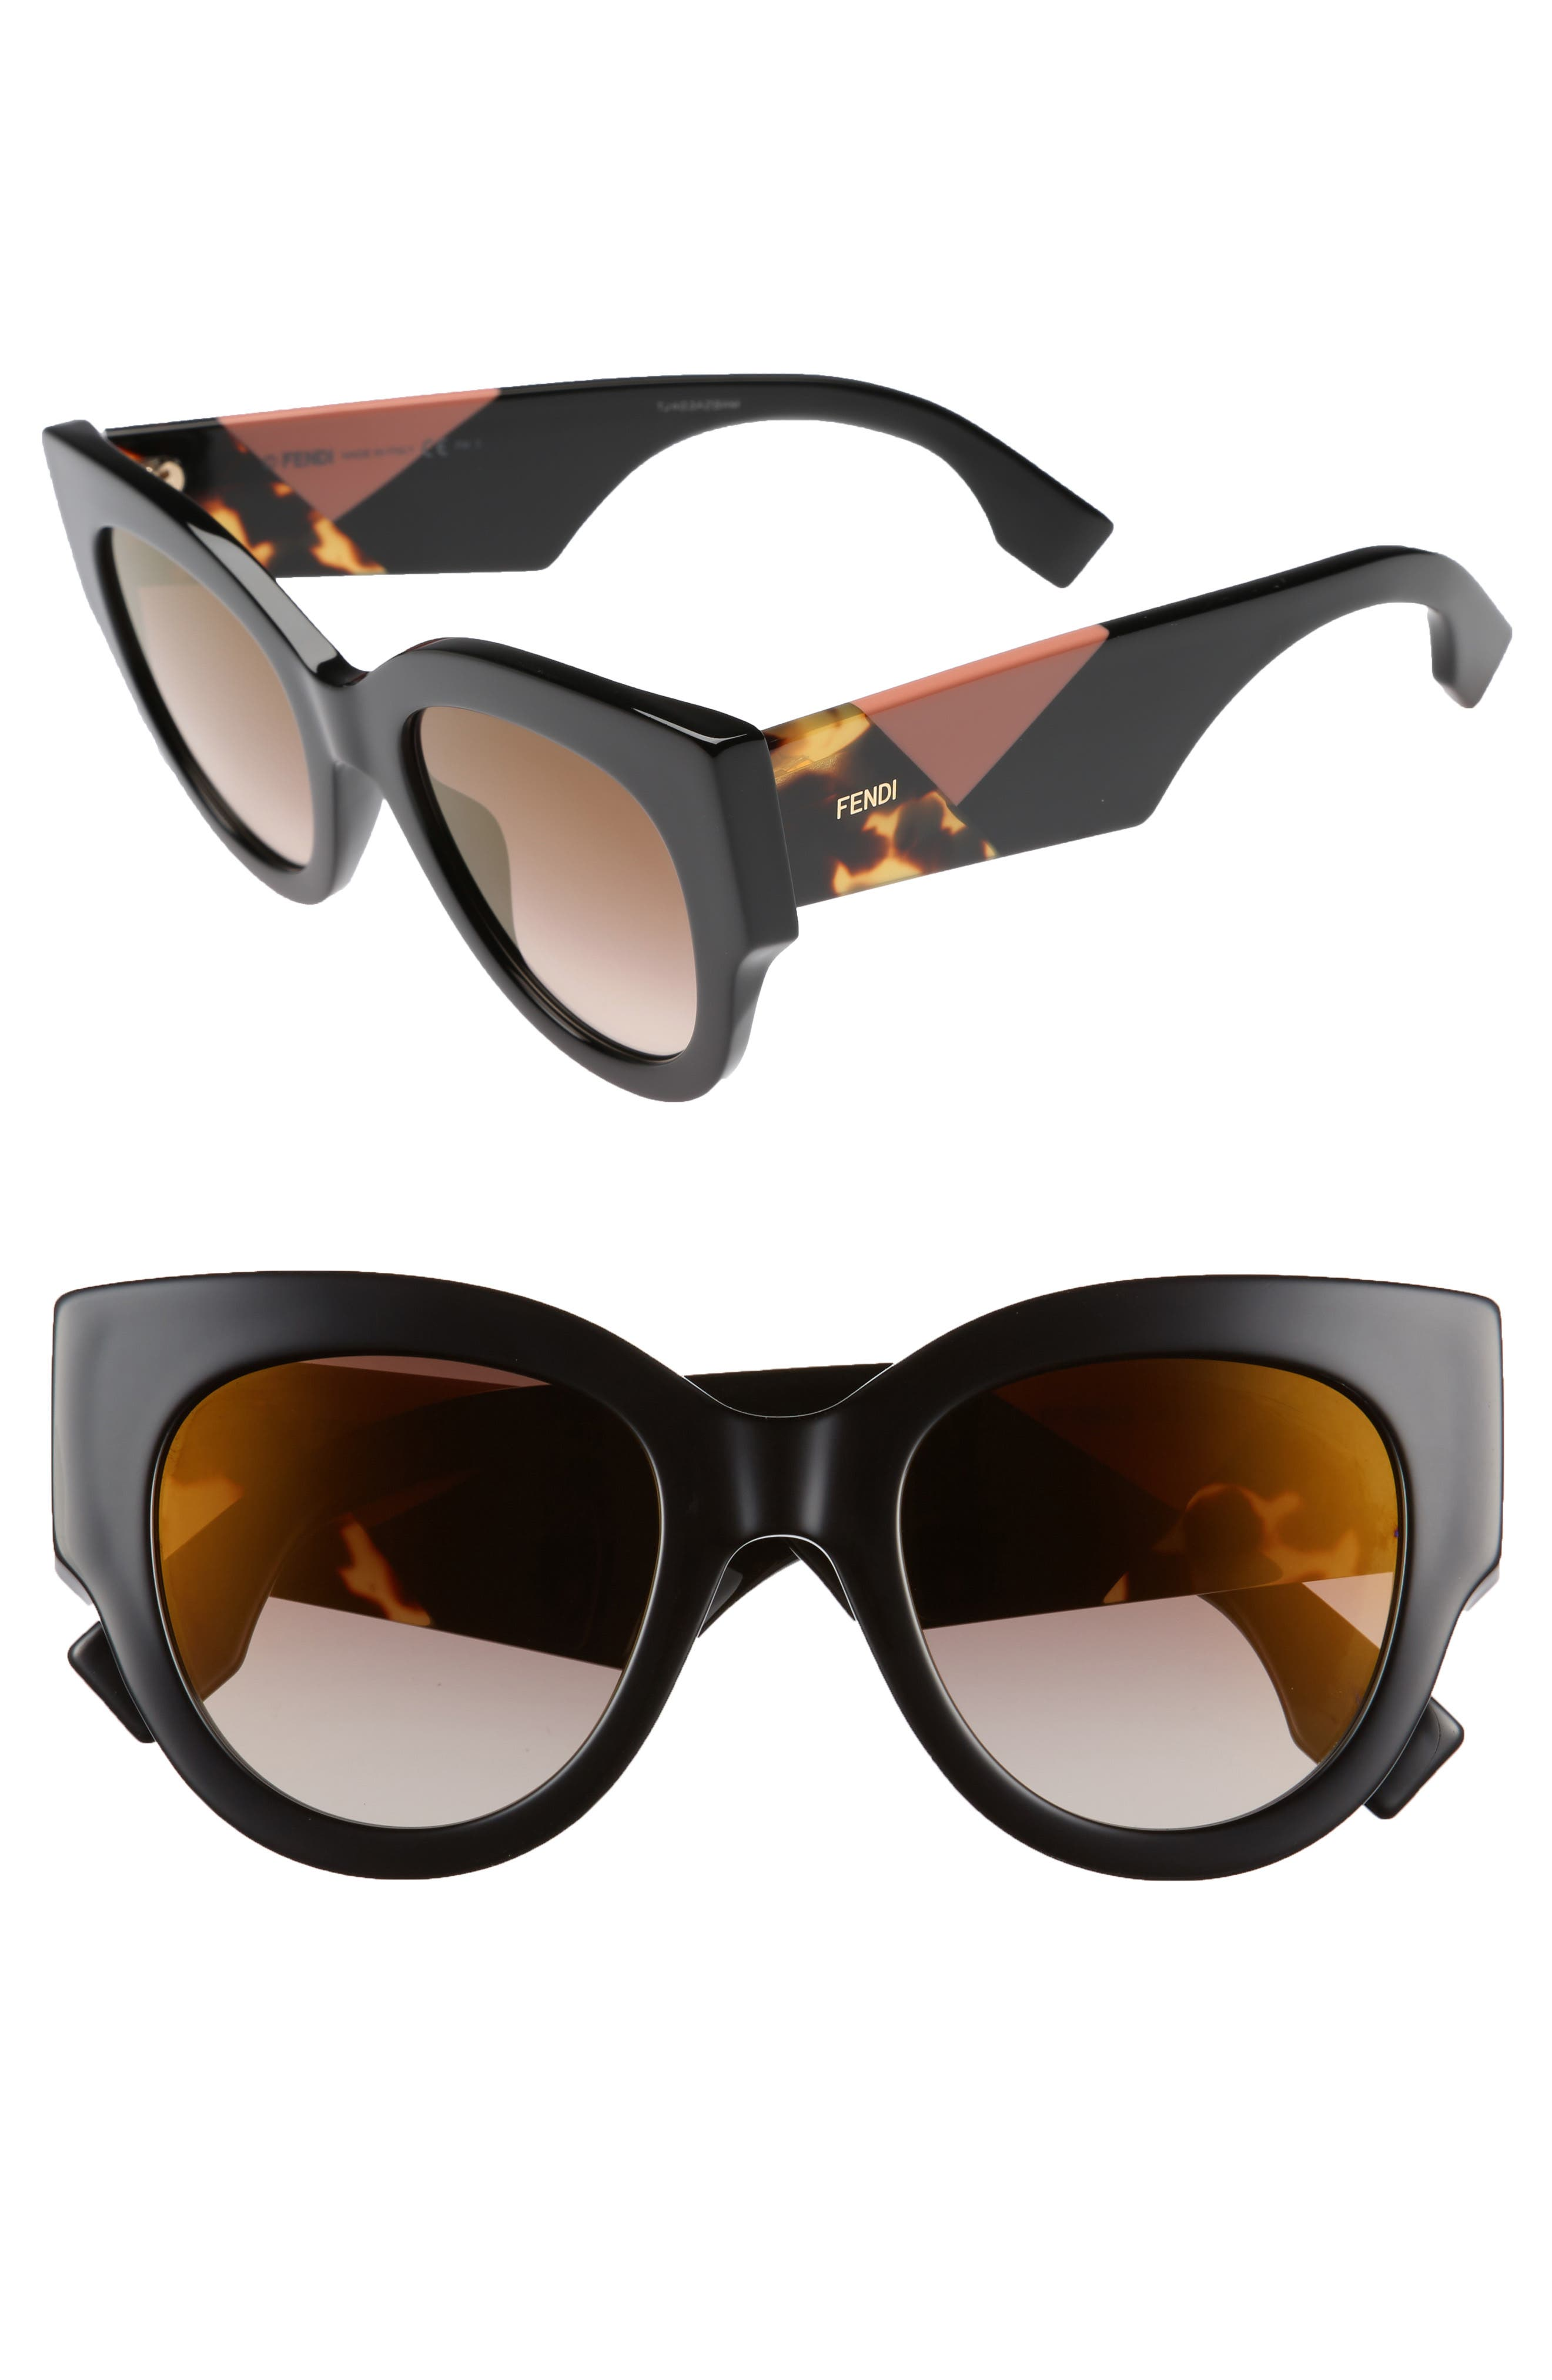 Main Image - Fendi 51mm Cat Eye Sunglasses